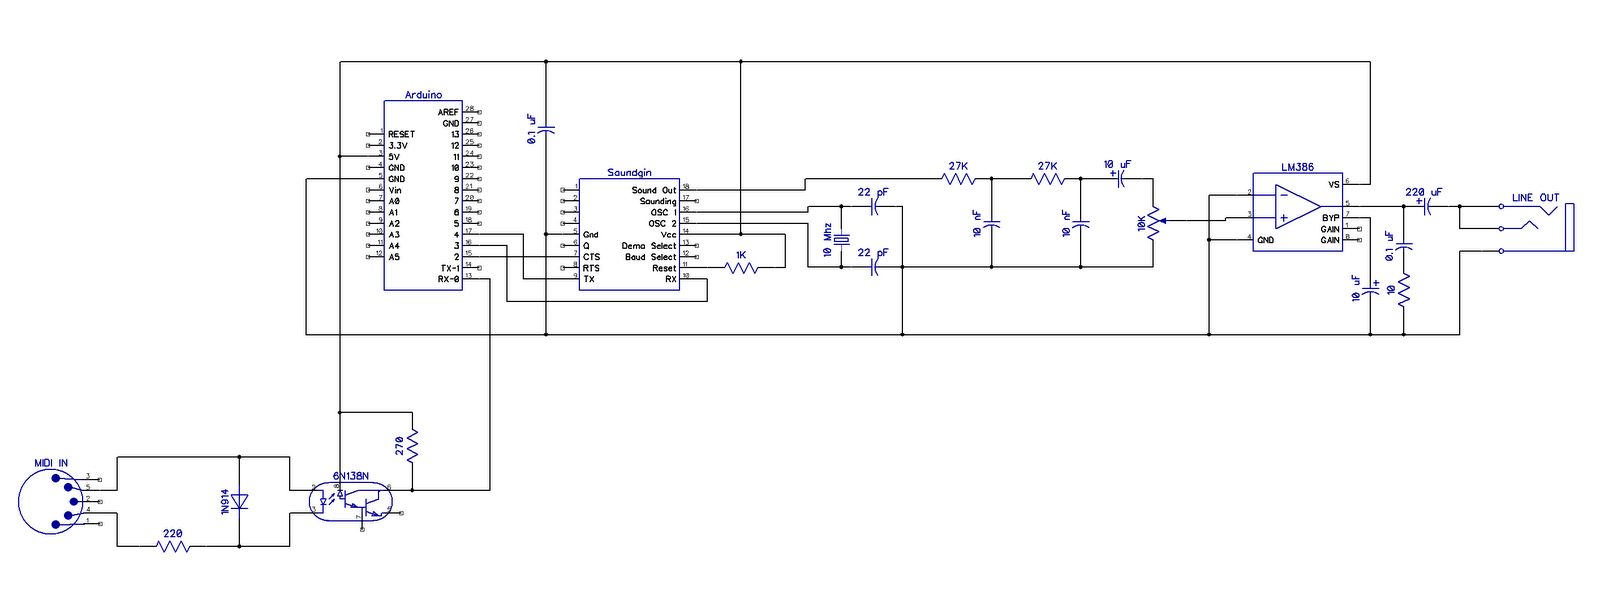 Notes And Volts Nav 1 Arduino Soundgin Babblebot Synth Part 2 Circuit Page 8 Microcontroller Circuits Nextgr Schematic